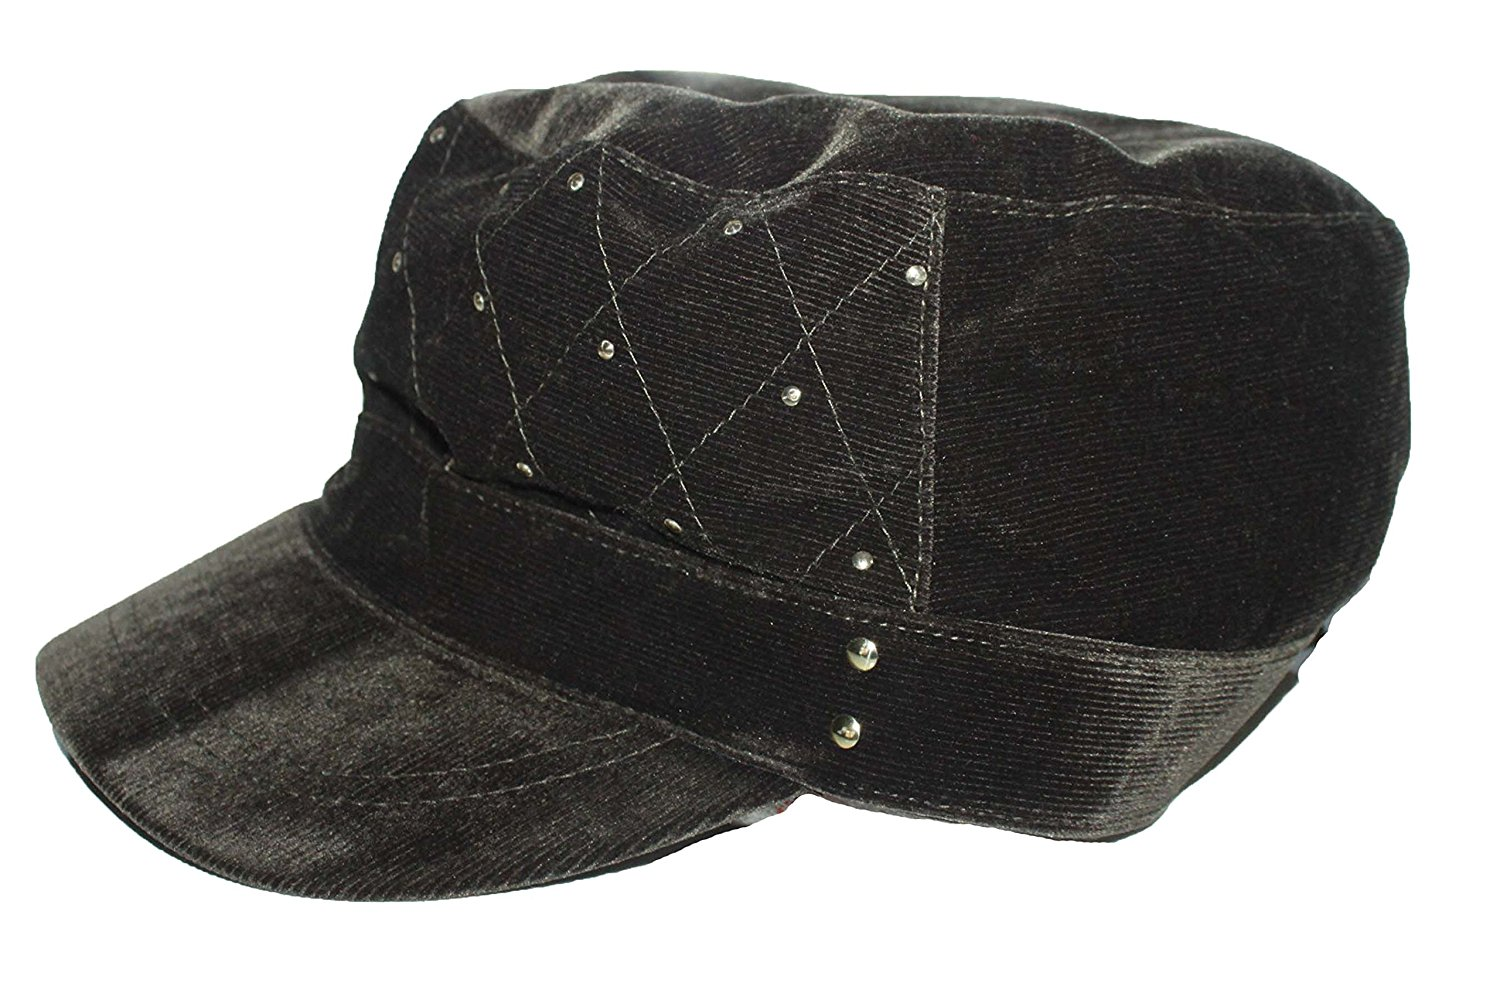 e364c1f9f99 Get Quotations · August Accessories Women s Hat Newsboy Military Cabbie  Corduroy Quilted Brown